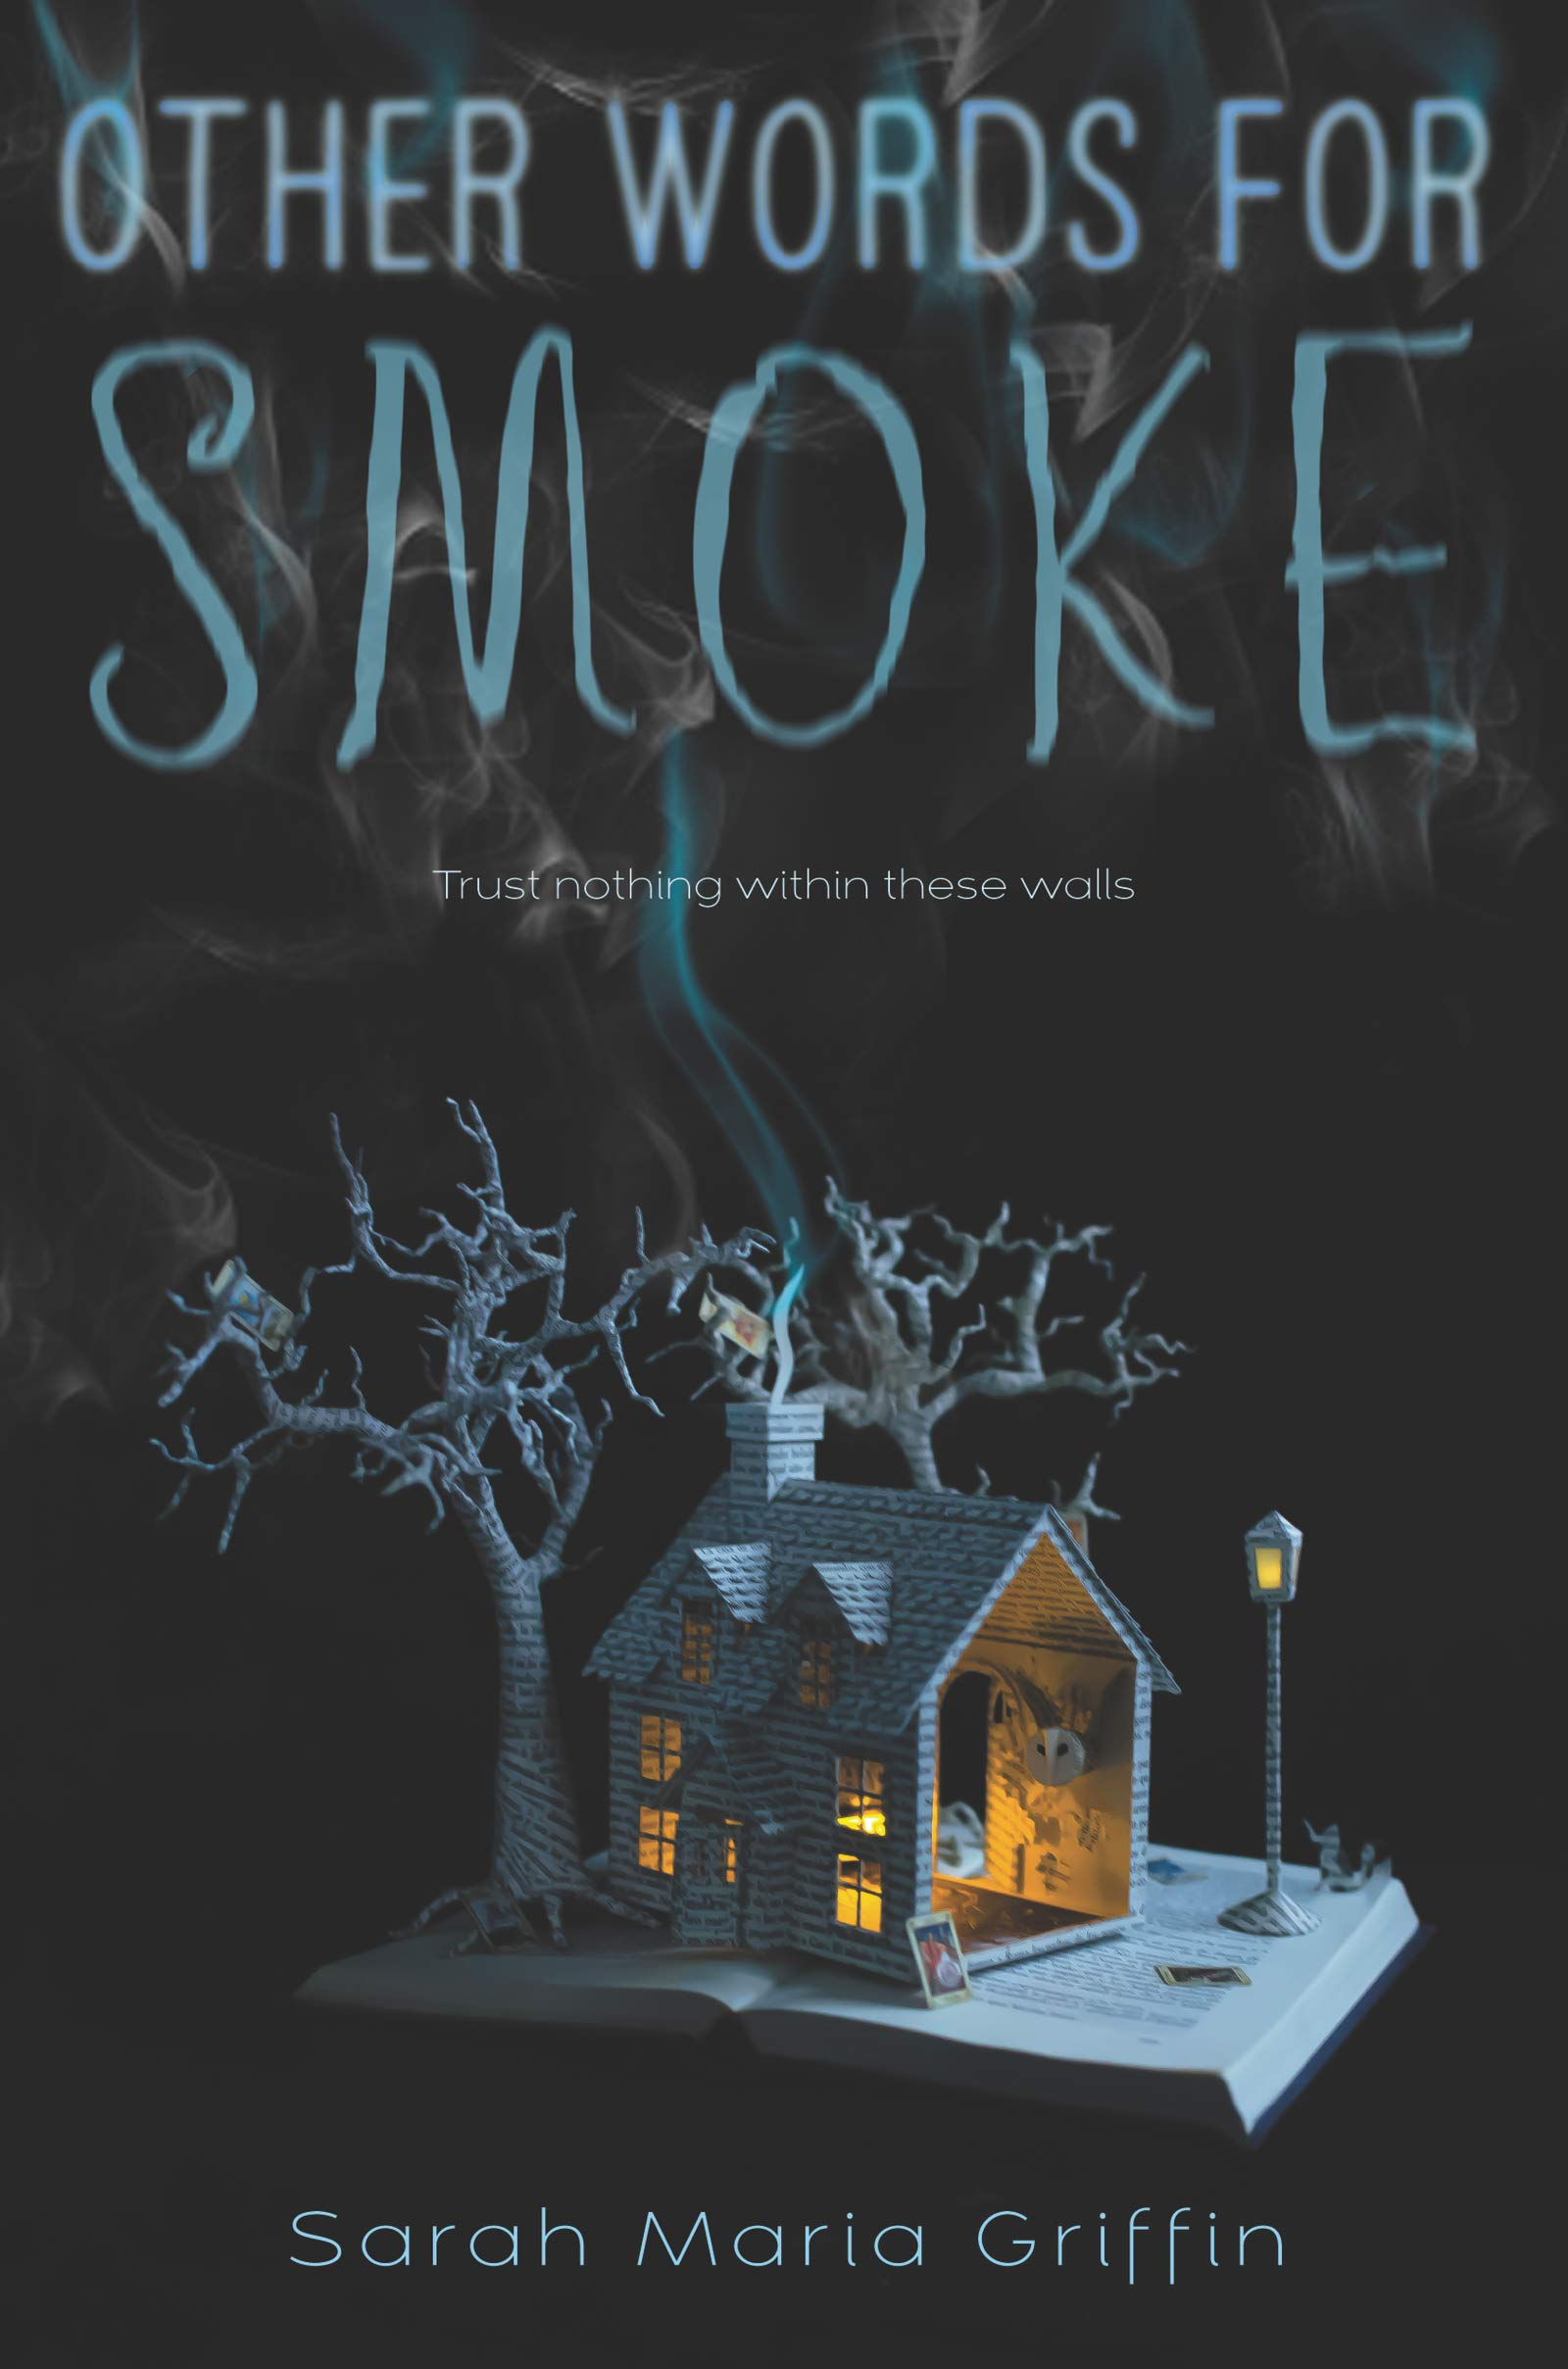 The cover of Other Words for Smoke, by Sarah Maria Griffin.